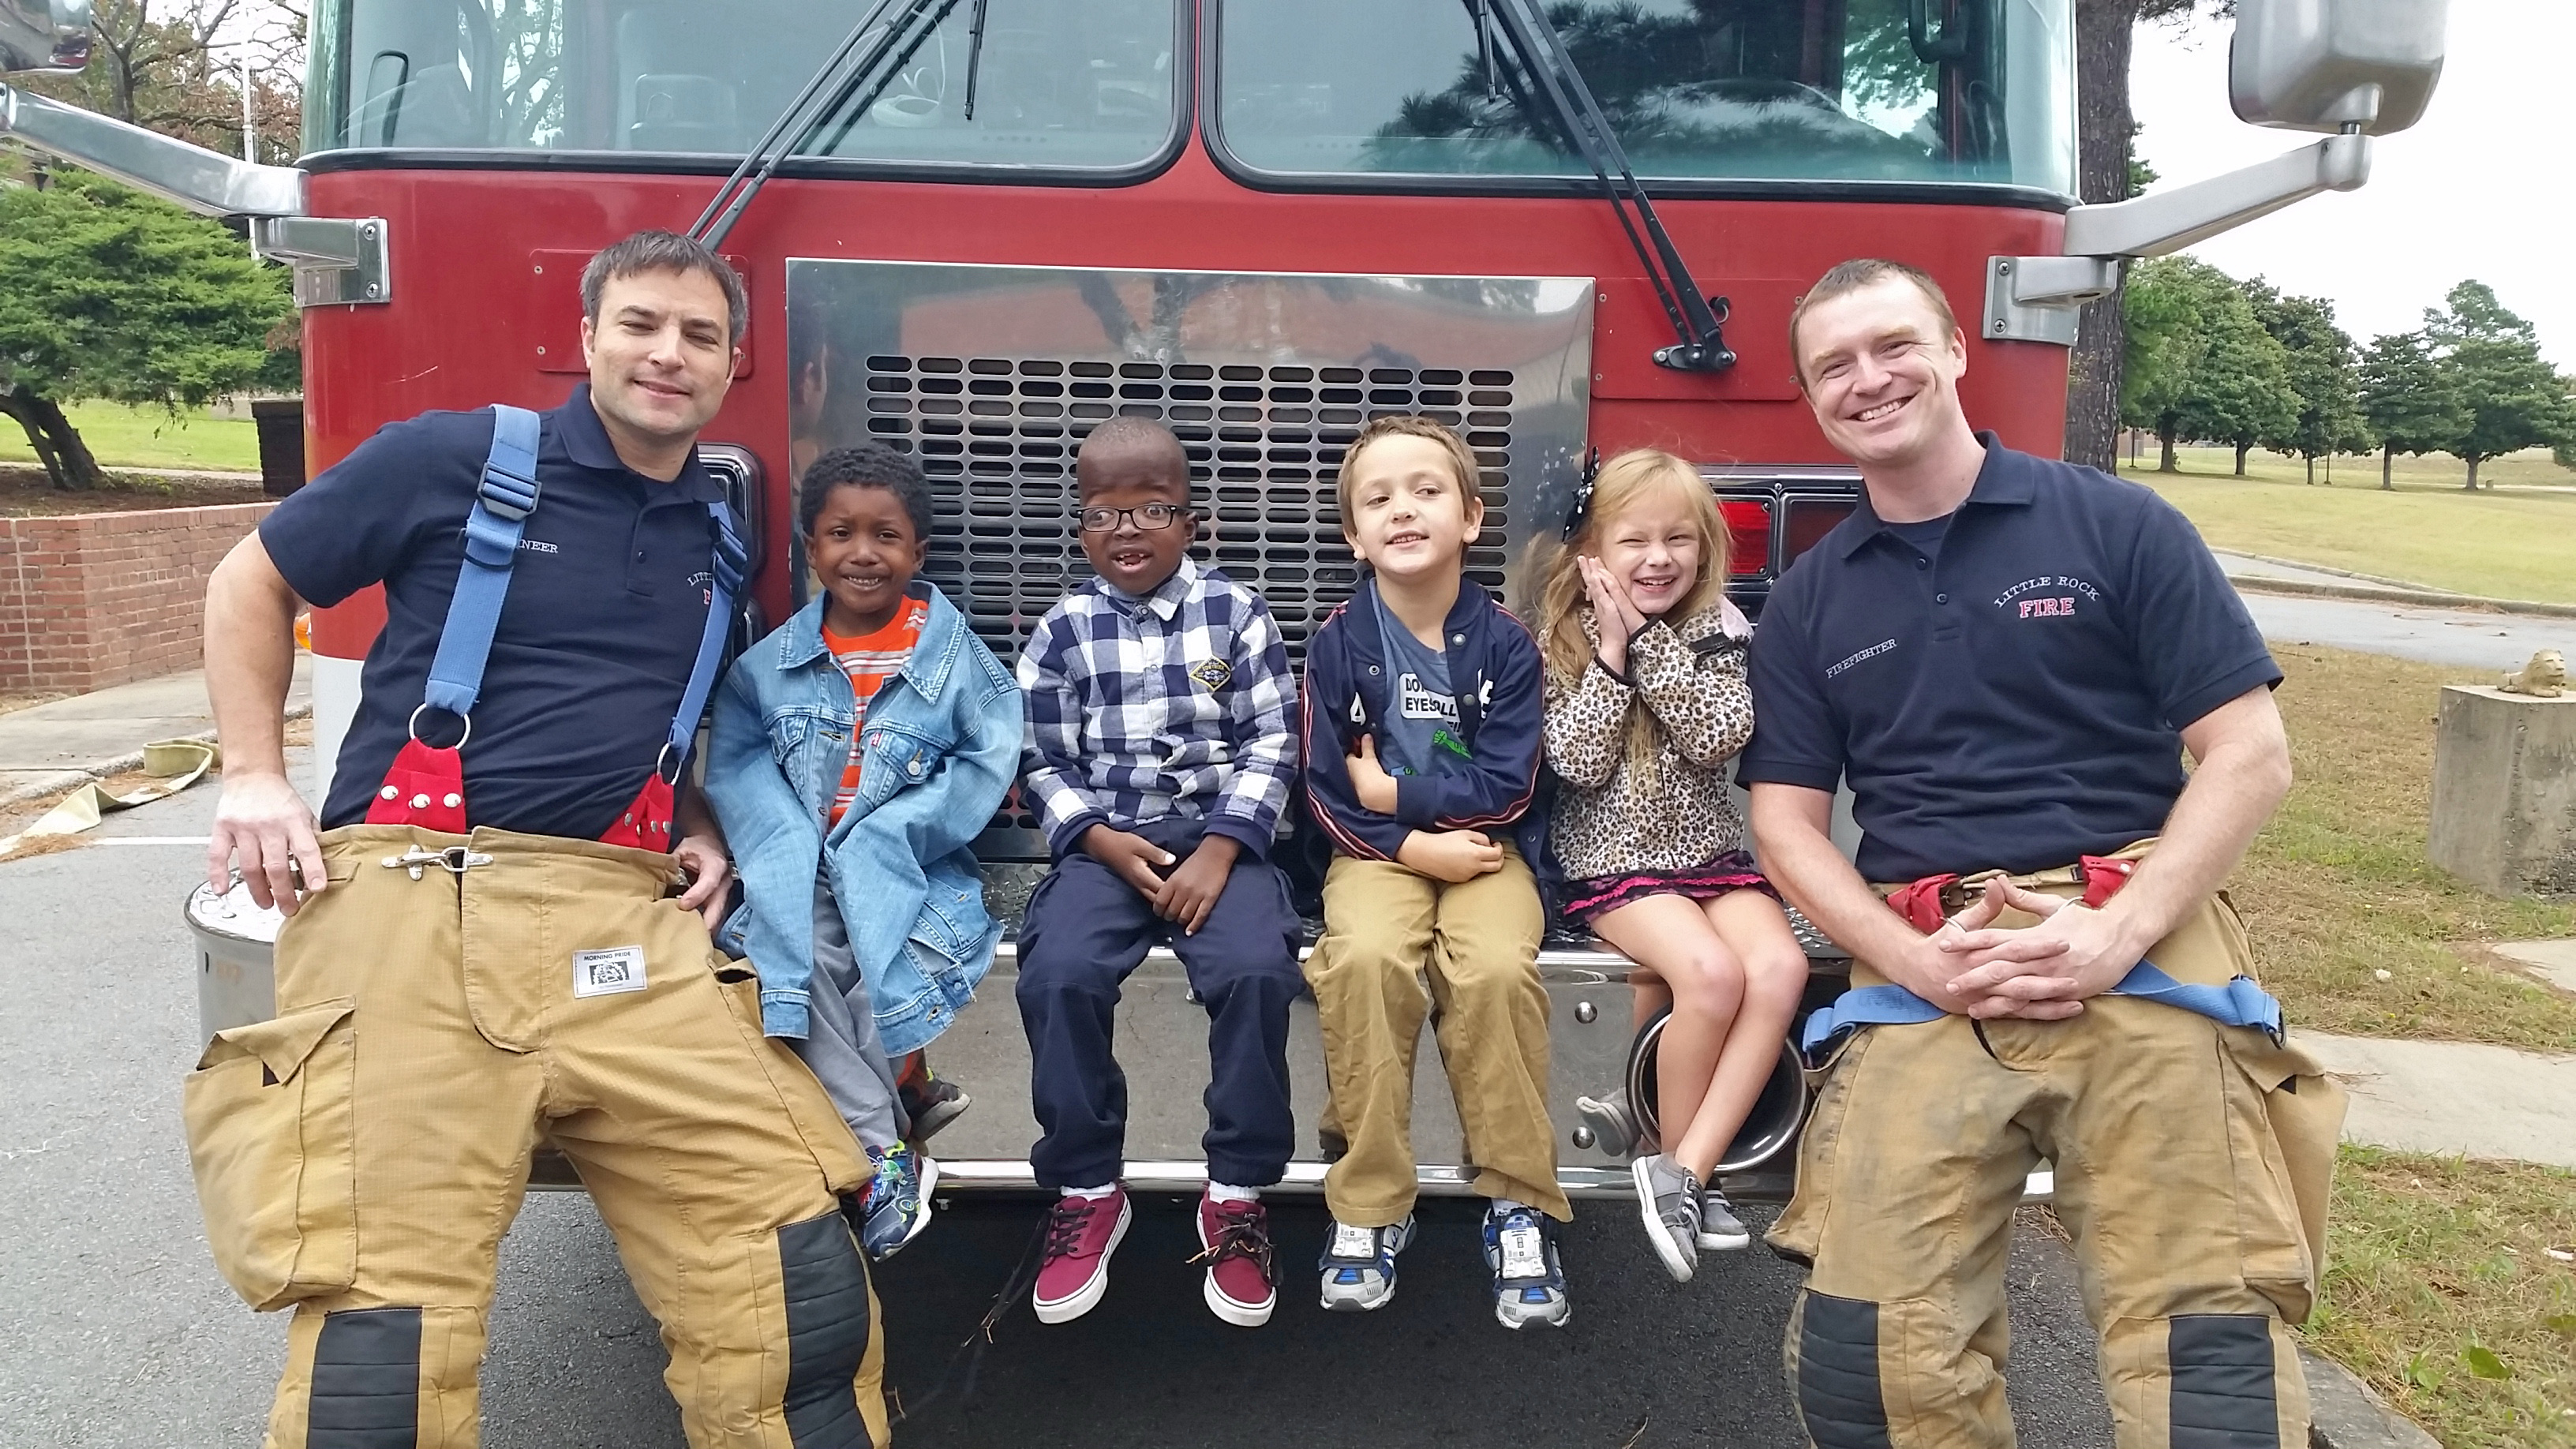 Students and Little Rock firemen sitting on the front bumper of a fire truck.